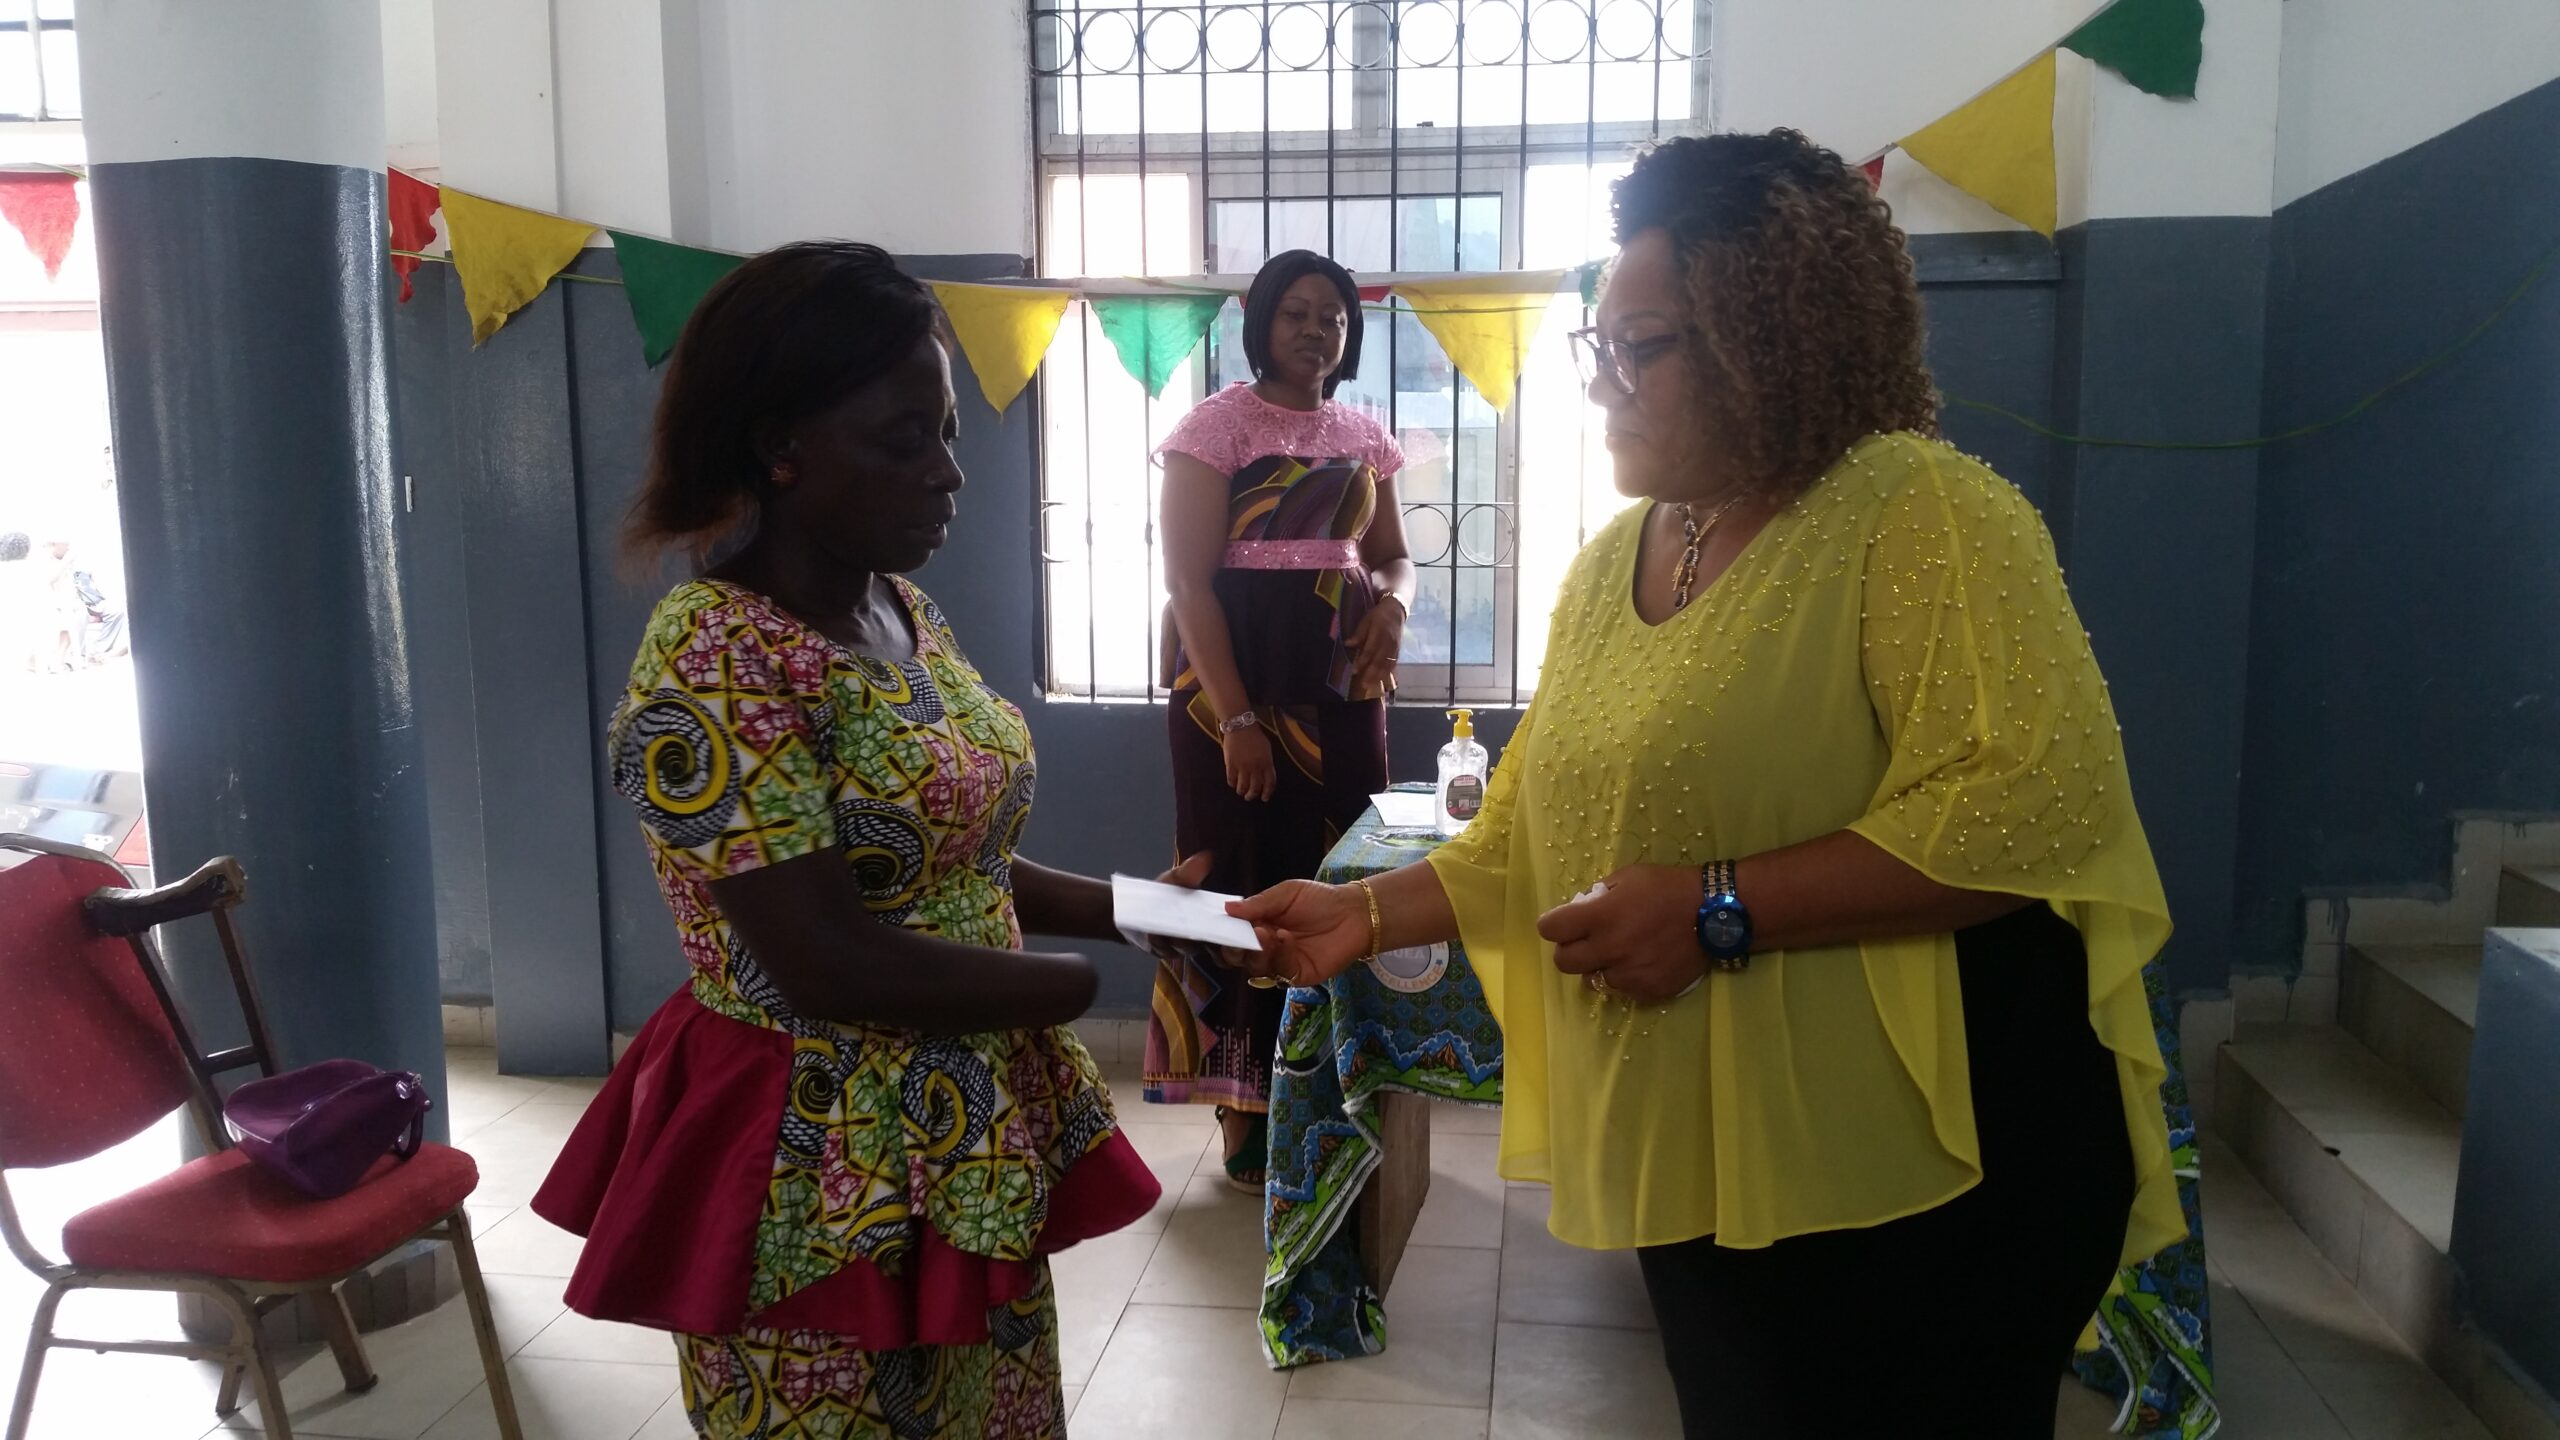 1st Deputy Mayor of Buea Akawoh Minerva epse Molinge hands a cheque to a Displaced person residing in Buea